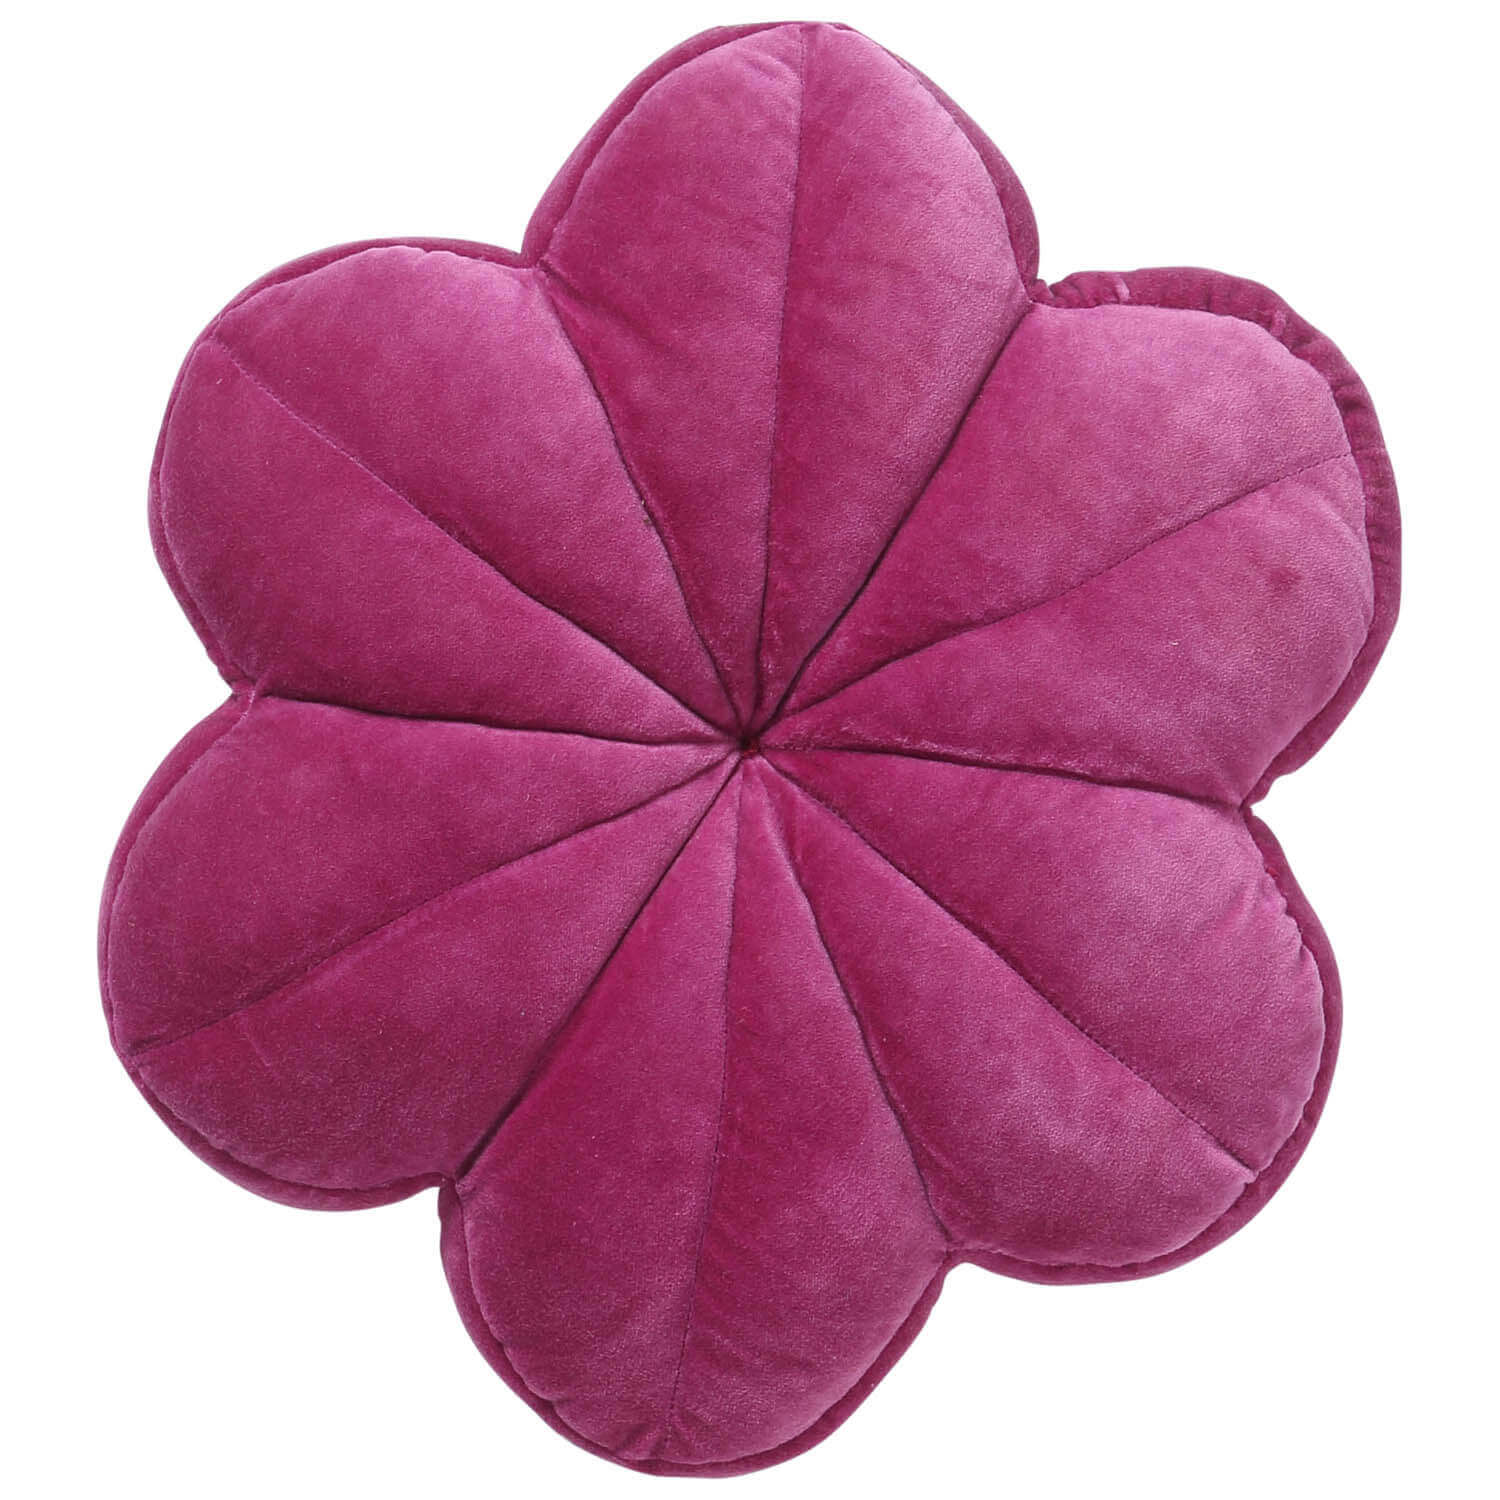 Kip and co velvet petal cushion - Passionfruit | The Home Maven